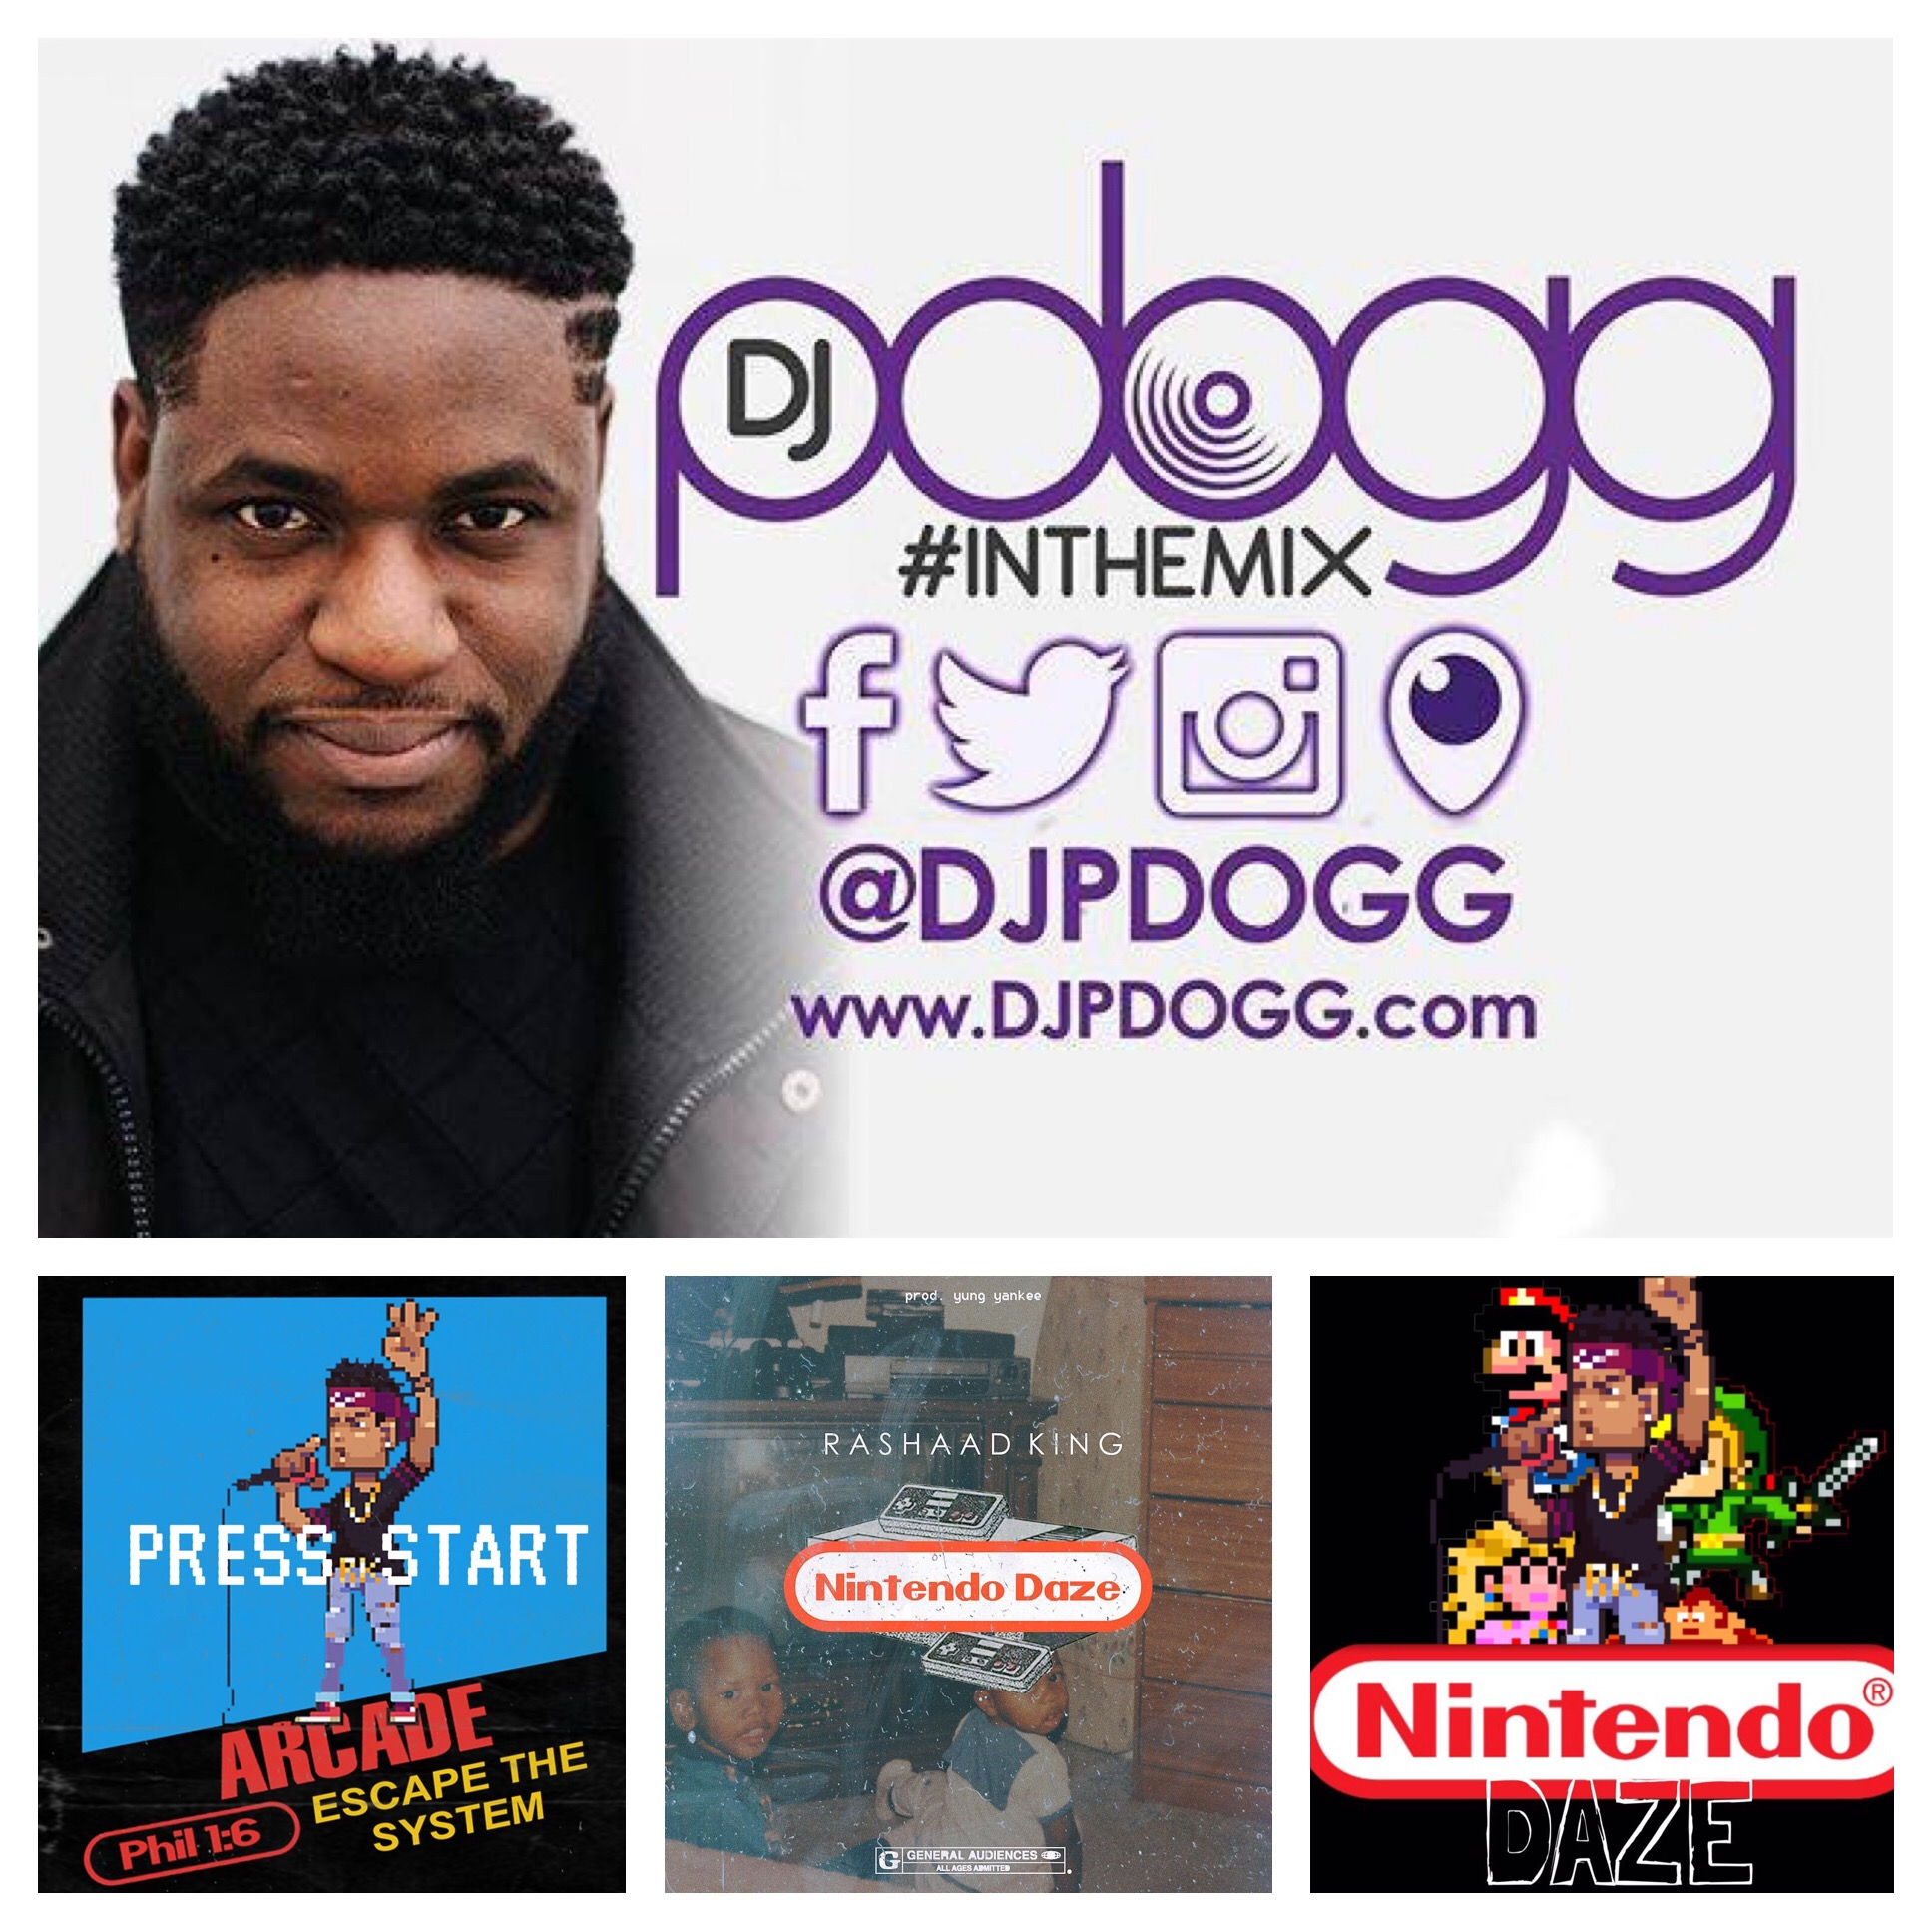 @Djpdogg #Inthemix Roundtable Episode 06